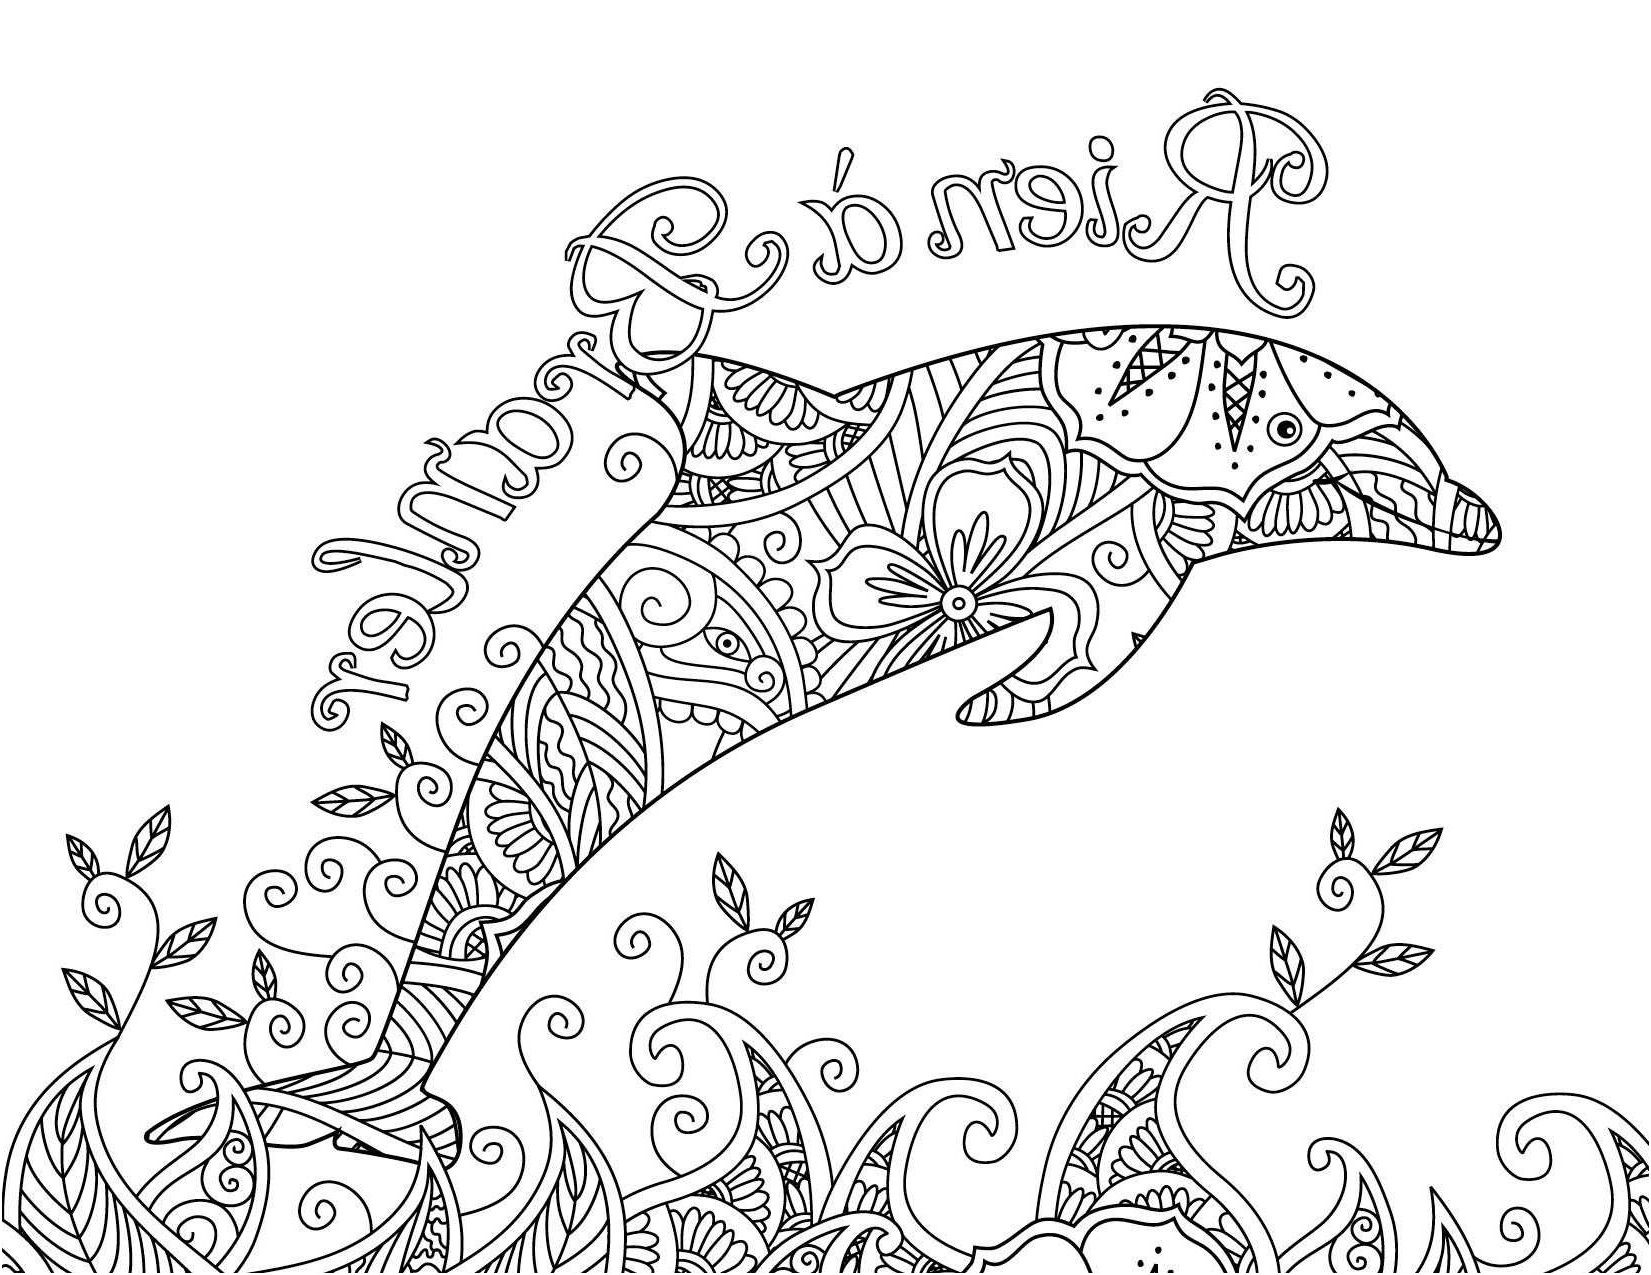 Cool Coloriage Princesse Licorne 49 Pour Coloriage idée by Coloriage Princesse Licorne